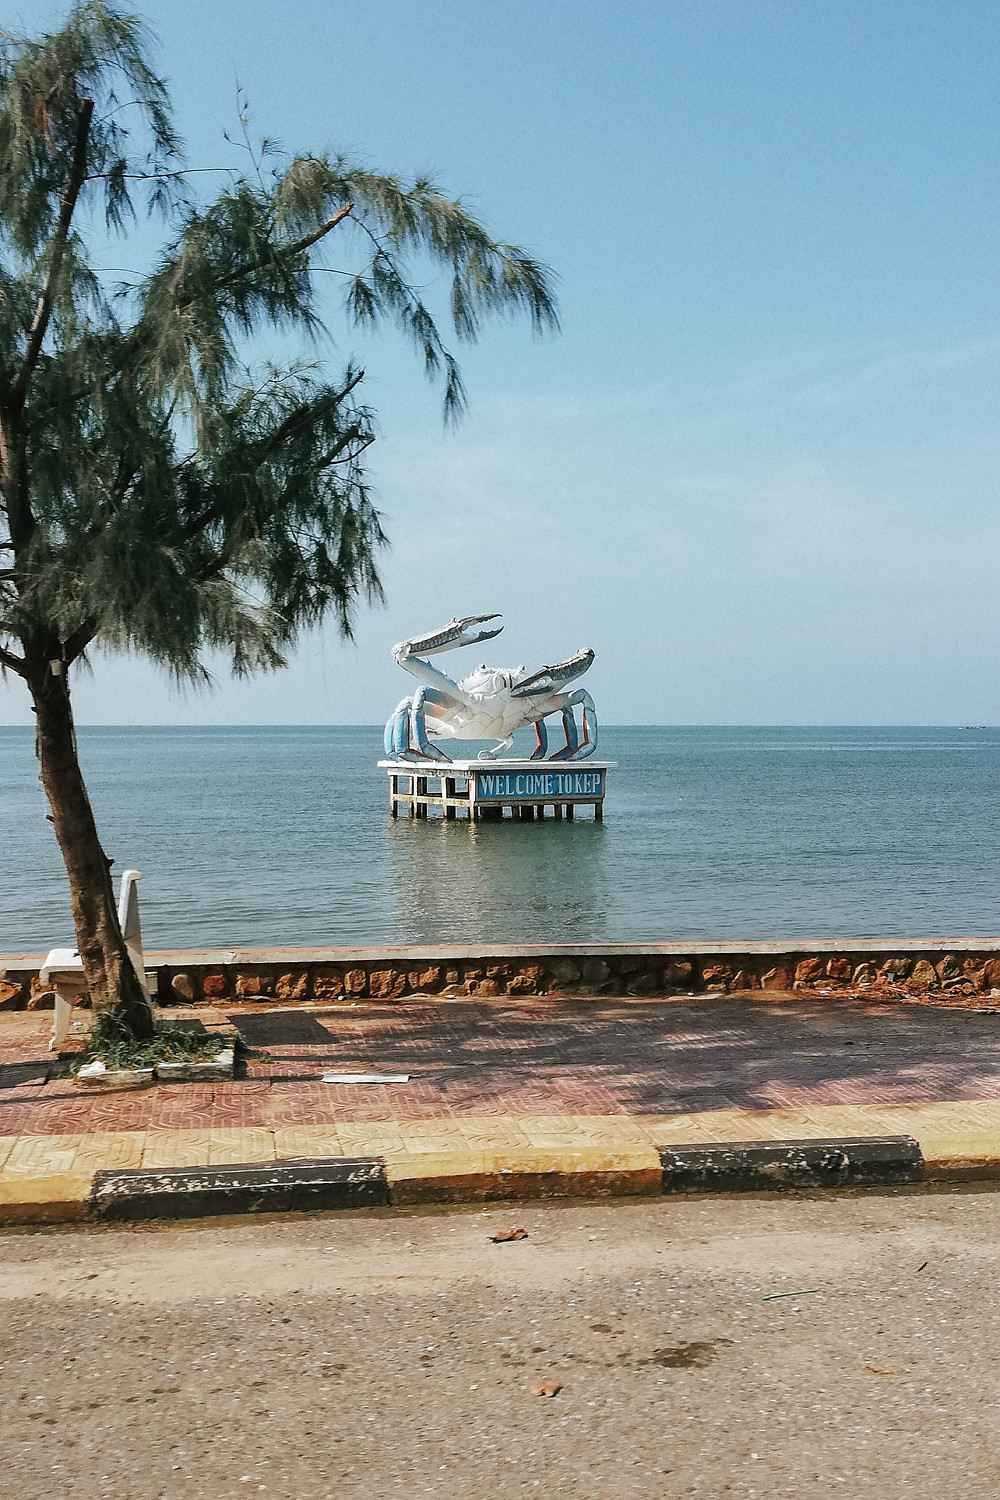 Famous crab statue in Kep, Cambodia